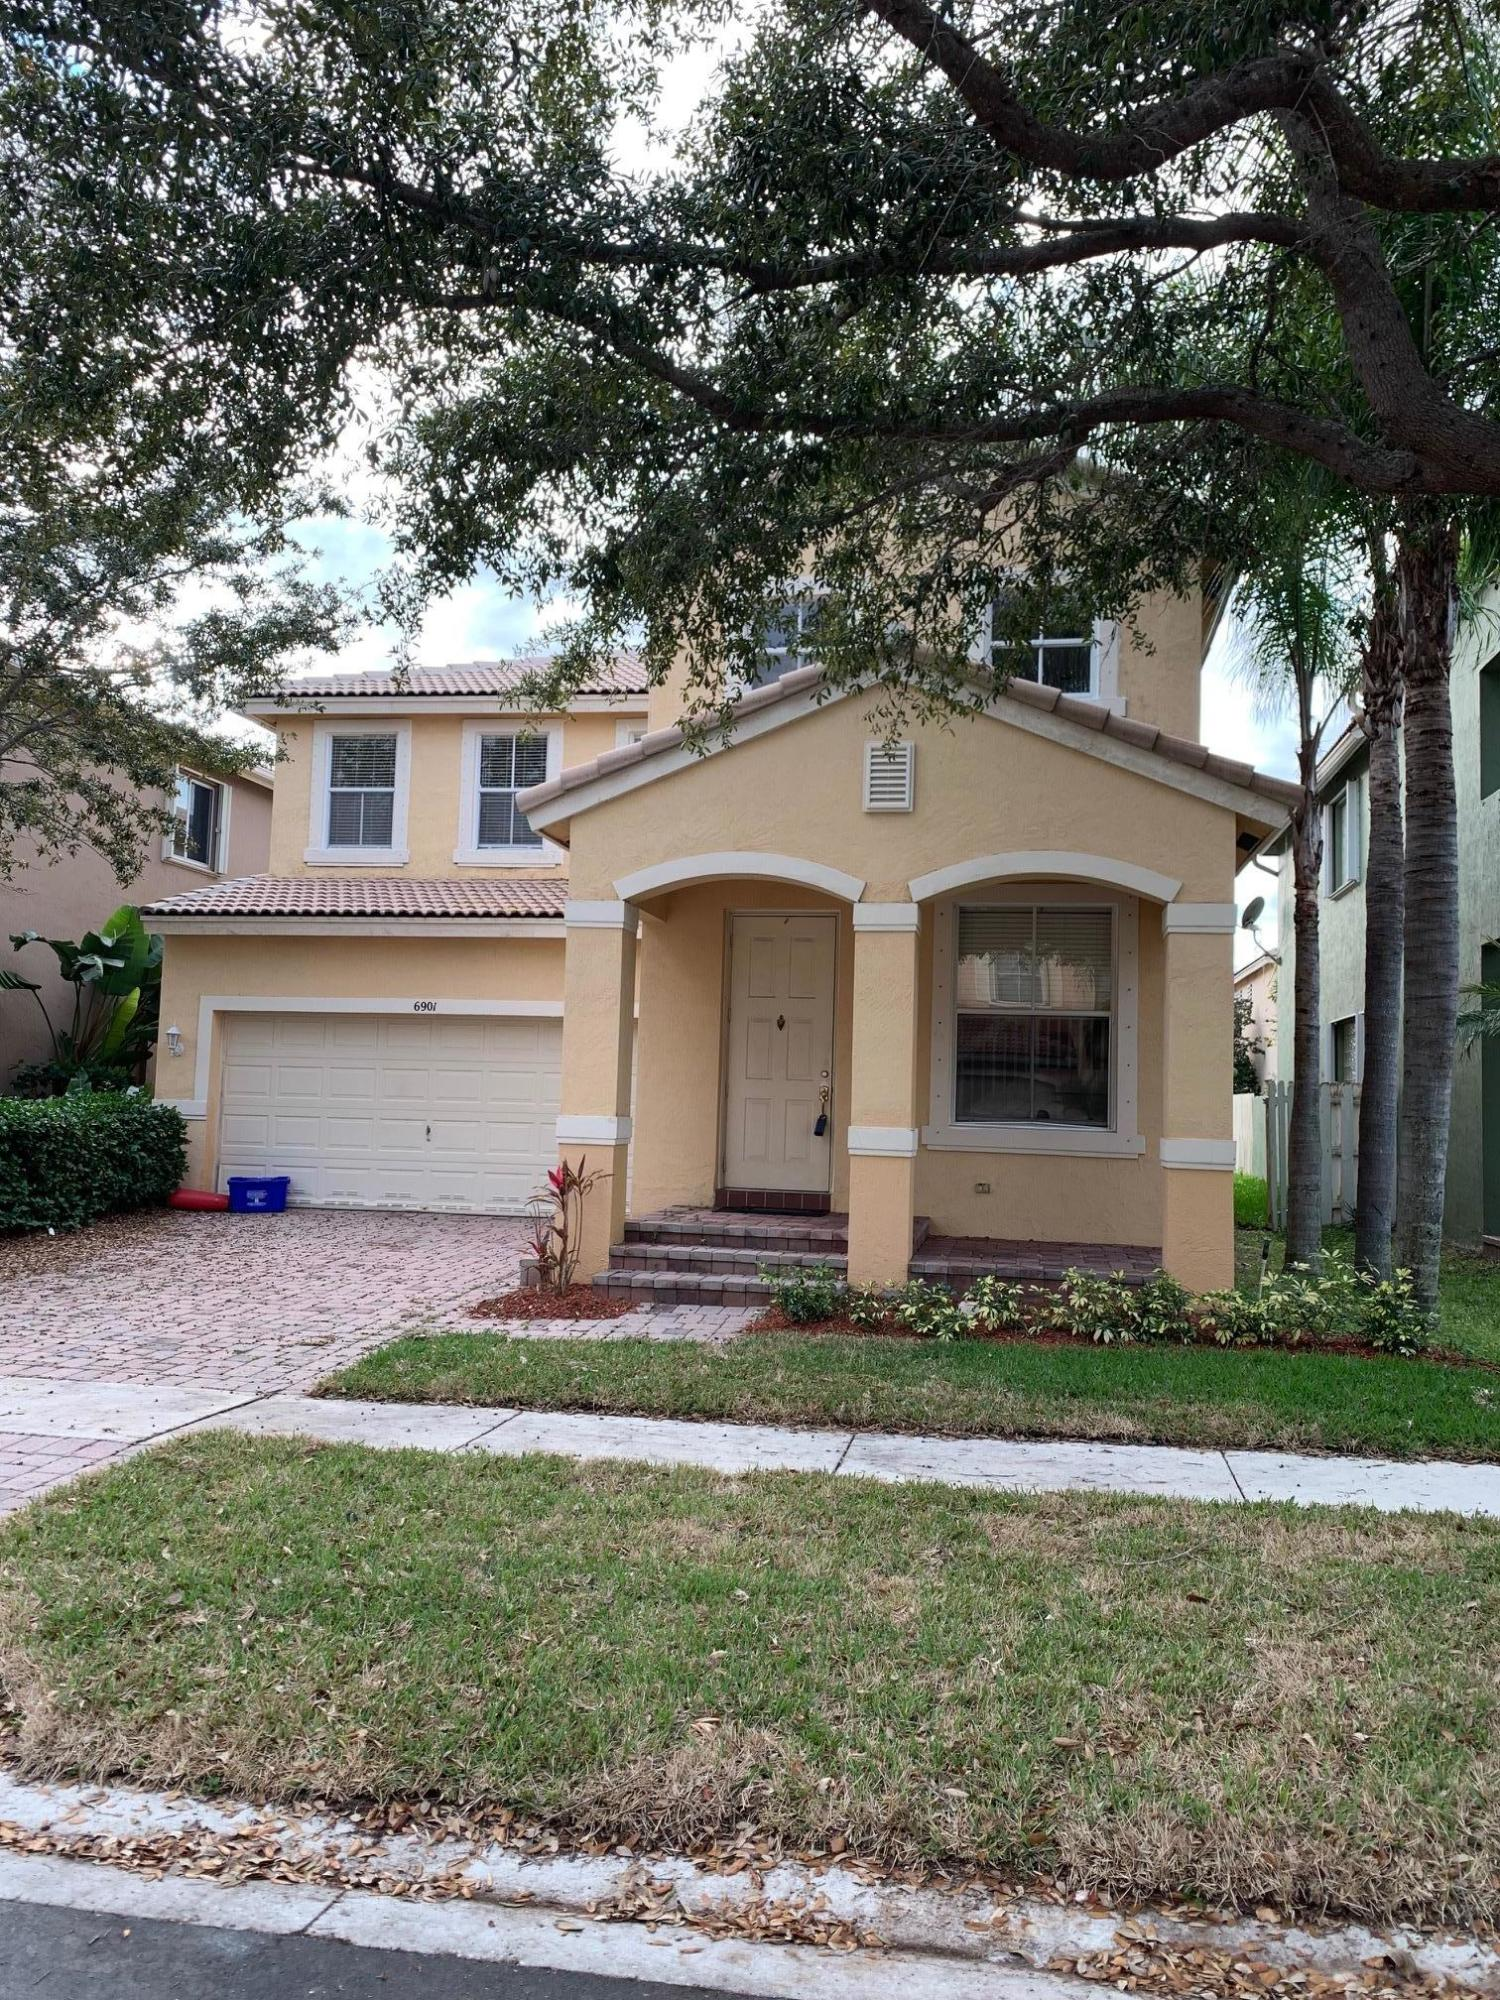 6901 Bruce Court, Lake Worth, Florida 33463, 5 Bedrooms Bedrooms, ,3.1 BathroomsBathrooms,Single Family,For Sale,COCO PLUM,Bruce,RX-10505198